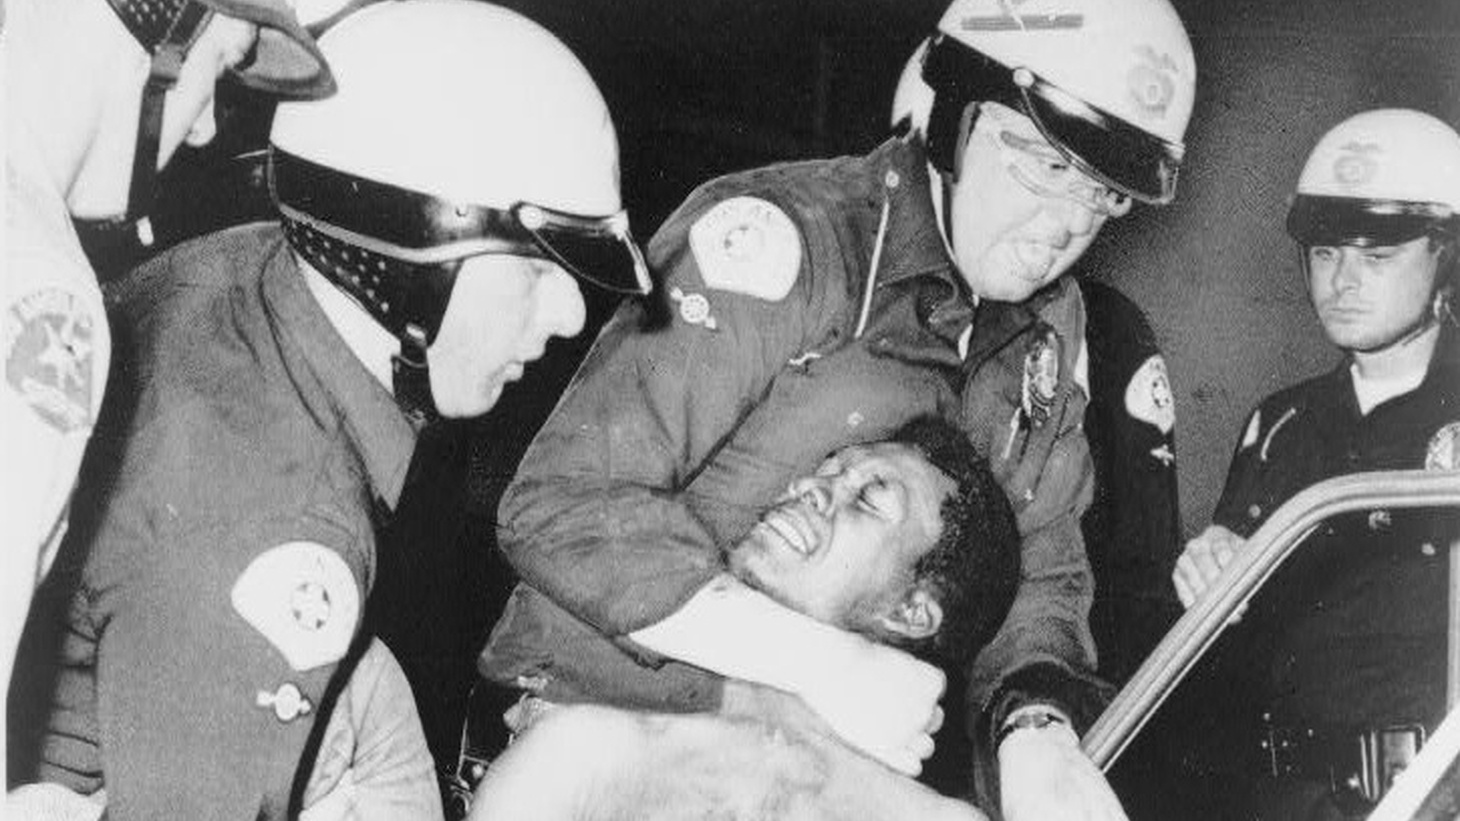 """Fifty years ago today, a traffic stop sparked six days of looting and burning in L.A. It was just after 7 p.m. when a California Highway Patrol car pulled over 21-year-old Marquette Frye, a young black man suspected of drunk driving in Watts. And the song """"Walking on Sunshine"""" has been used or covered in so many TV commercials, shows and movies, that it earns about a million dollars a year."""